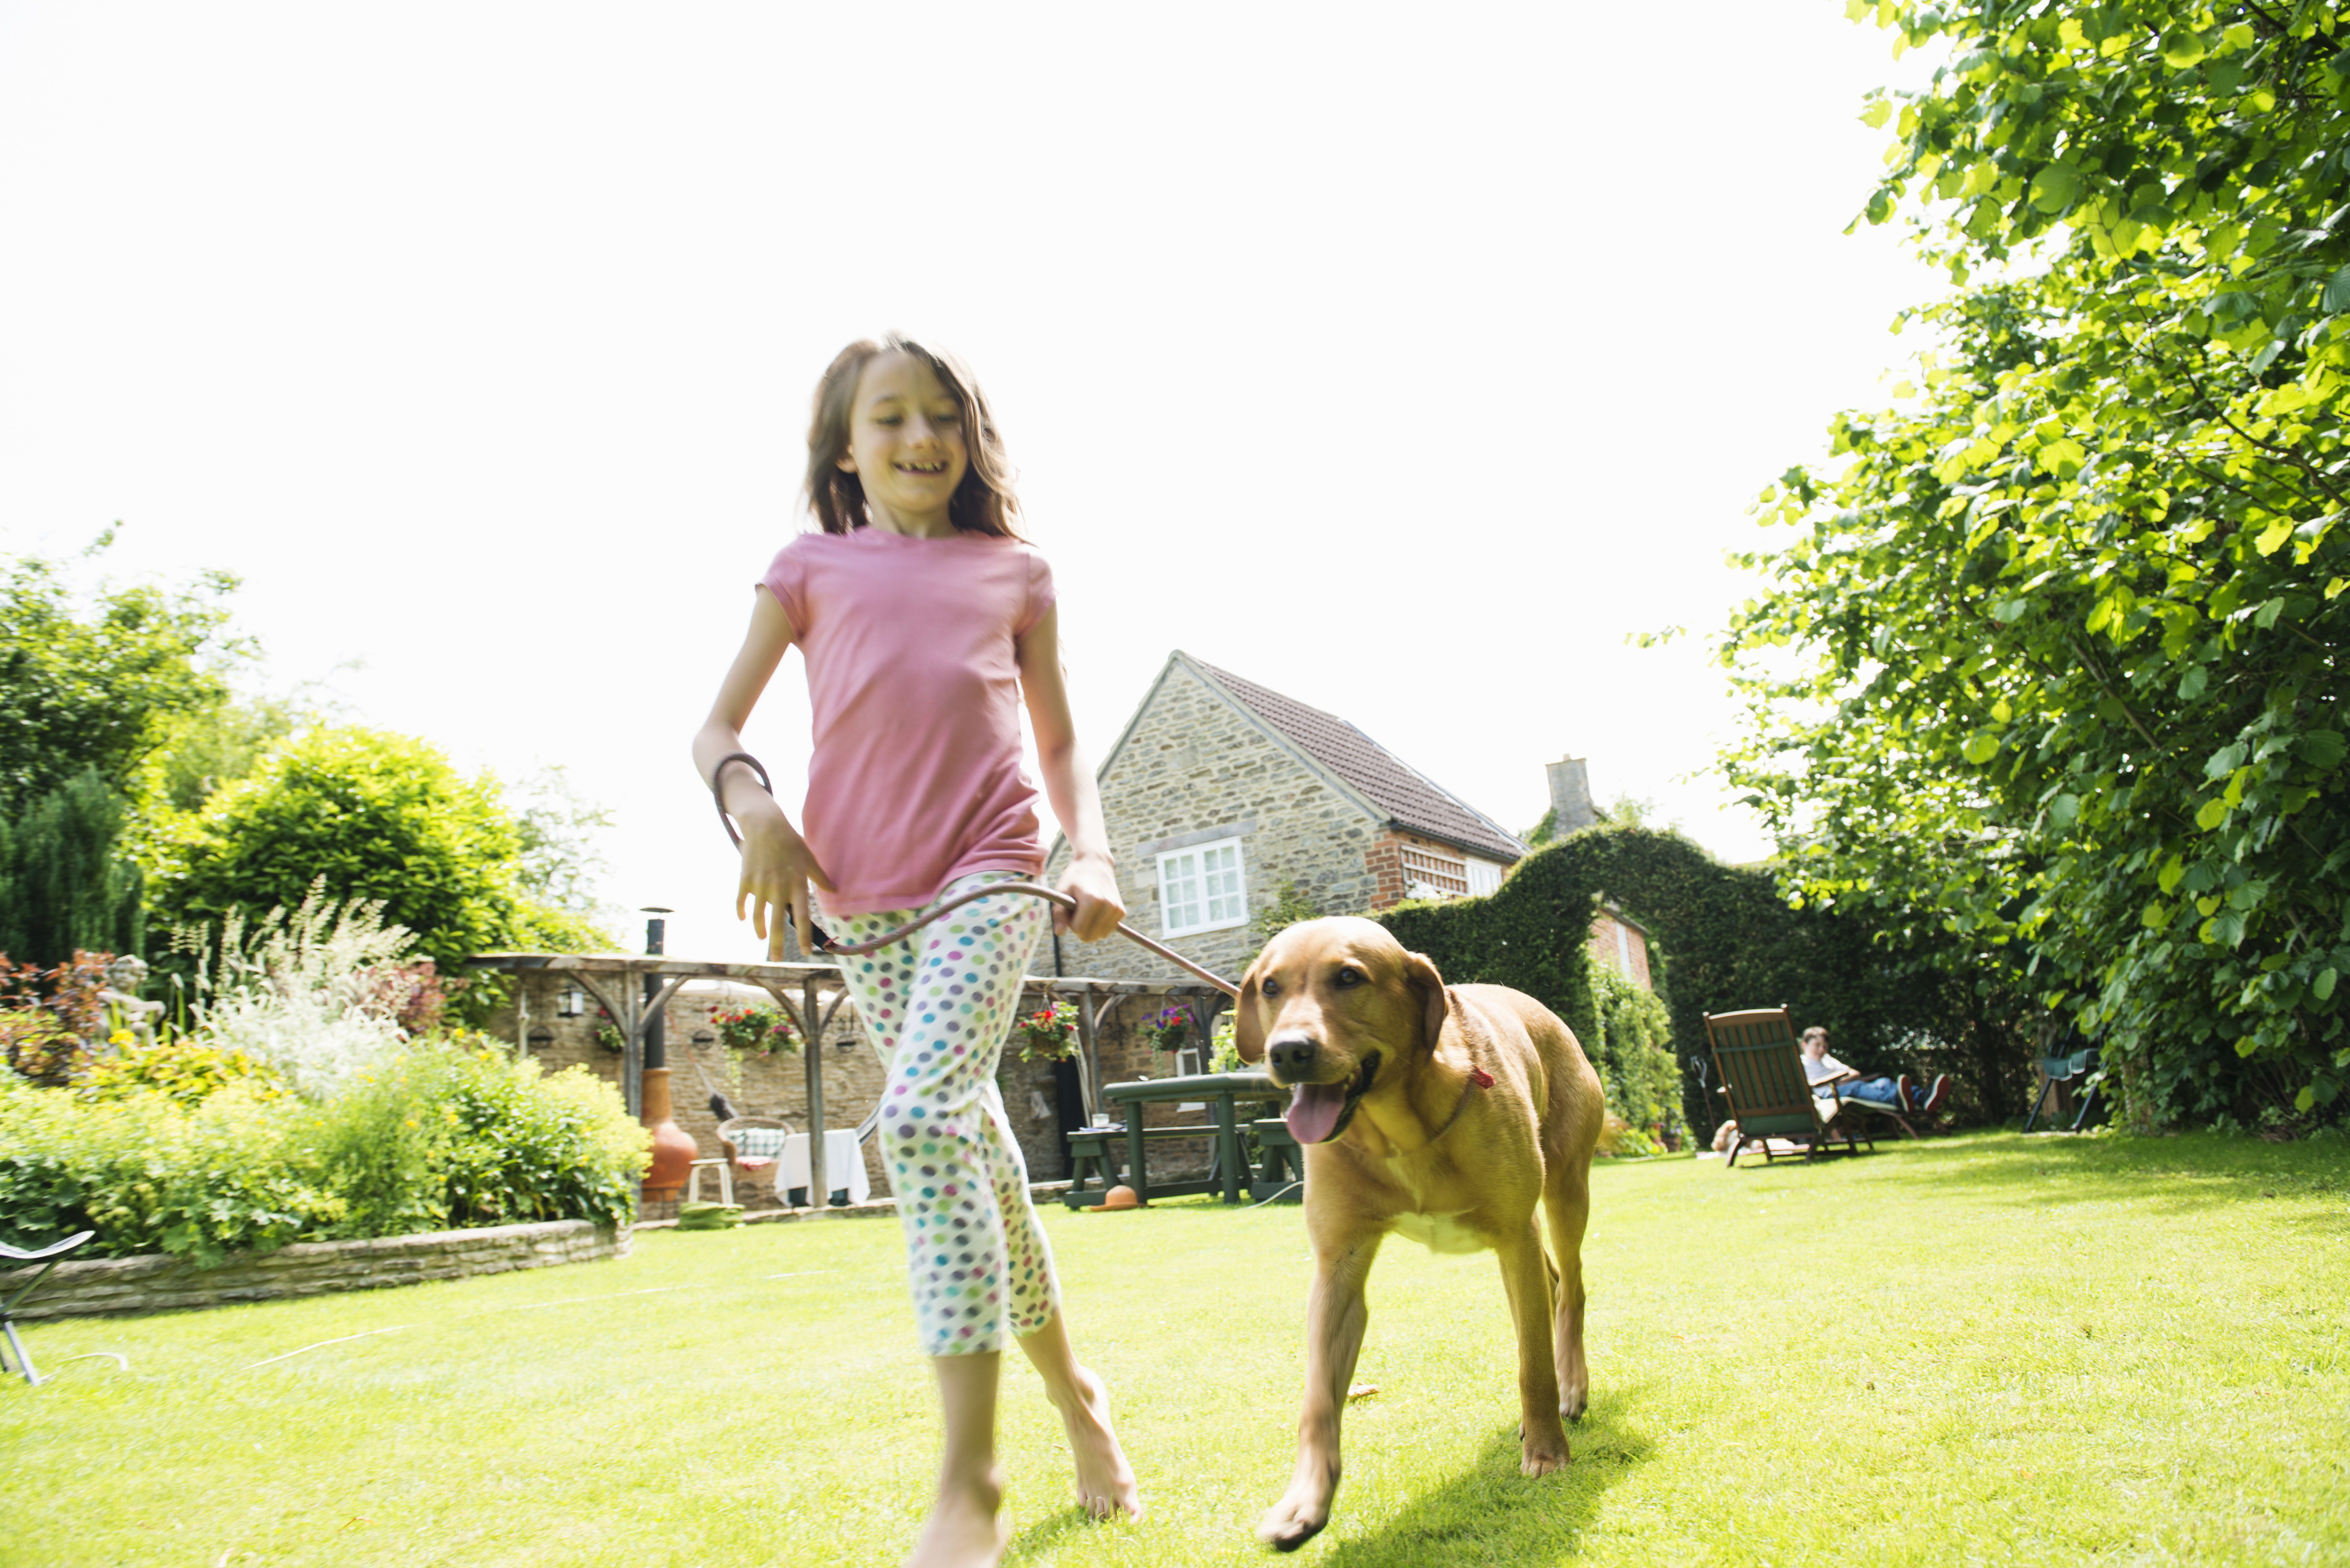 Girl walking dog on leash in garden as a part-time job.